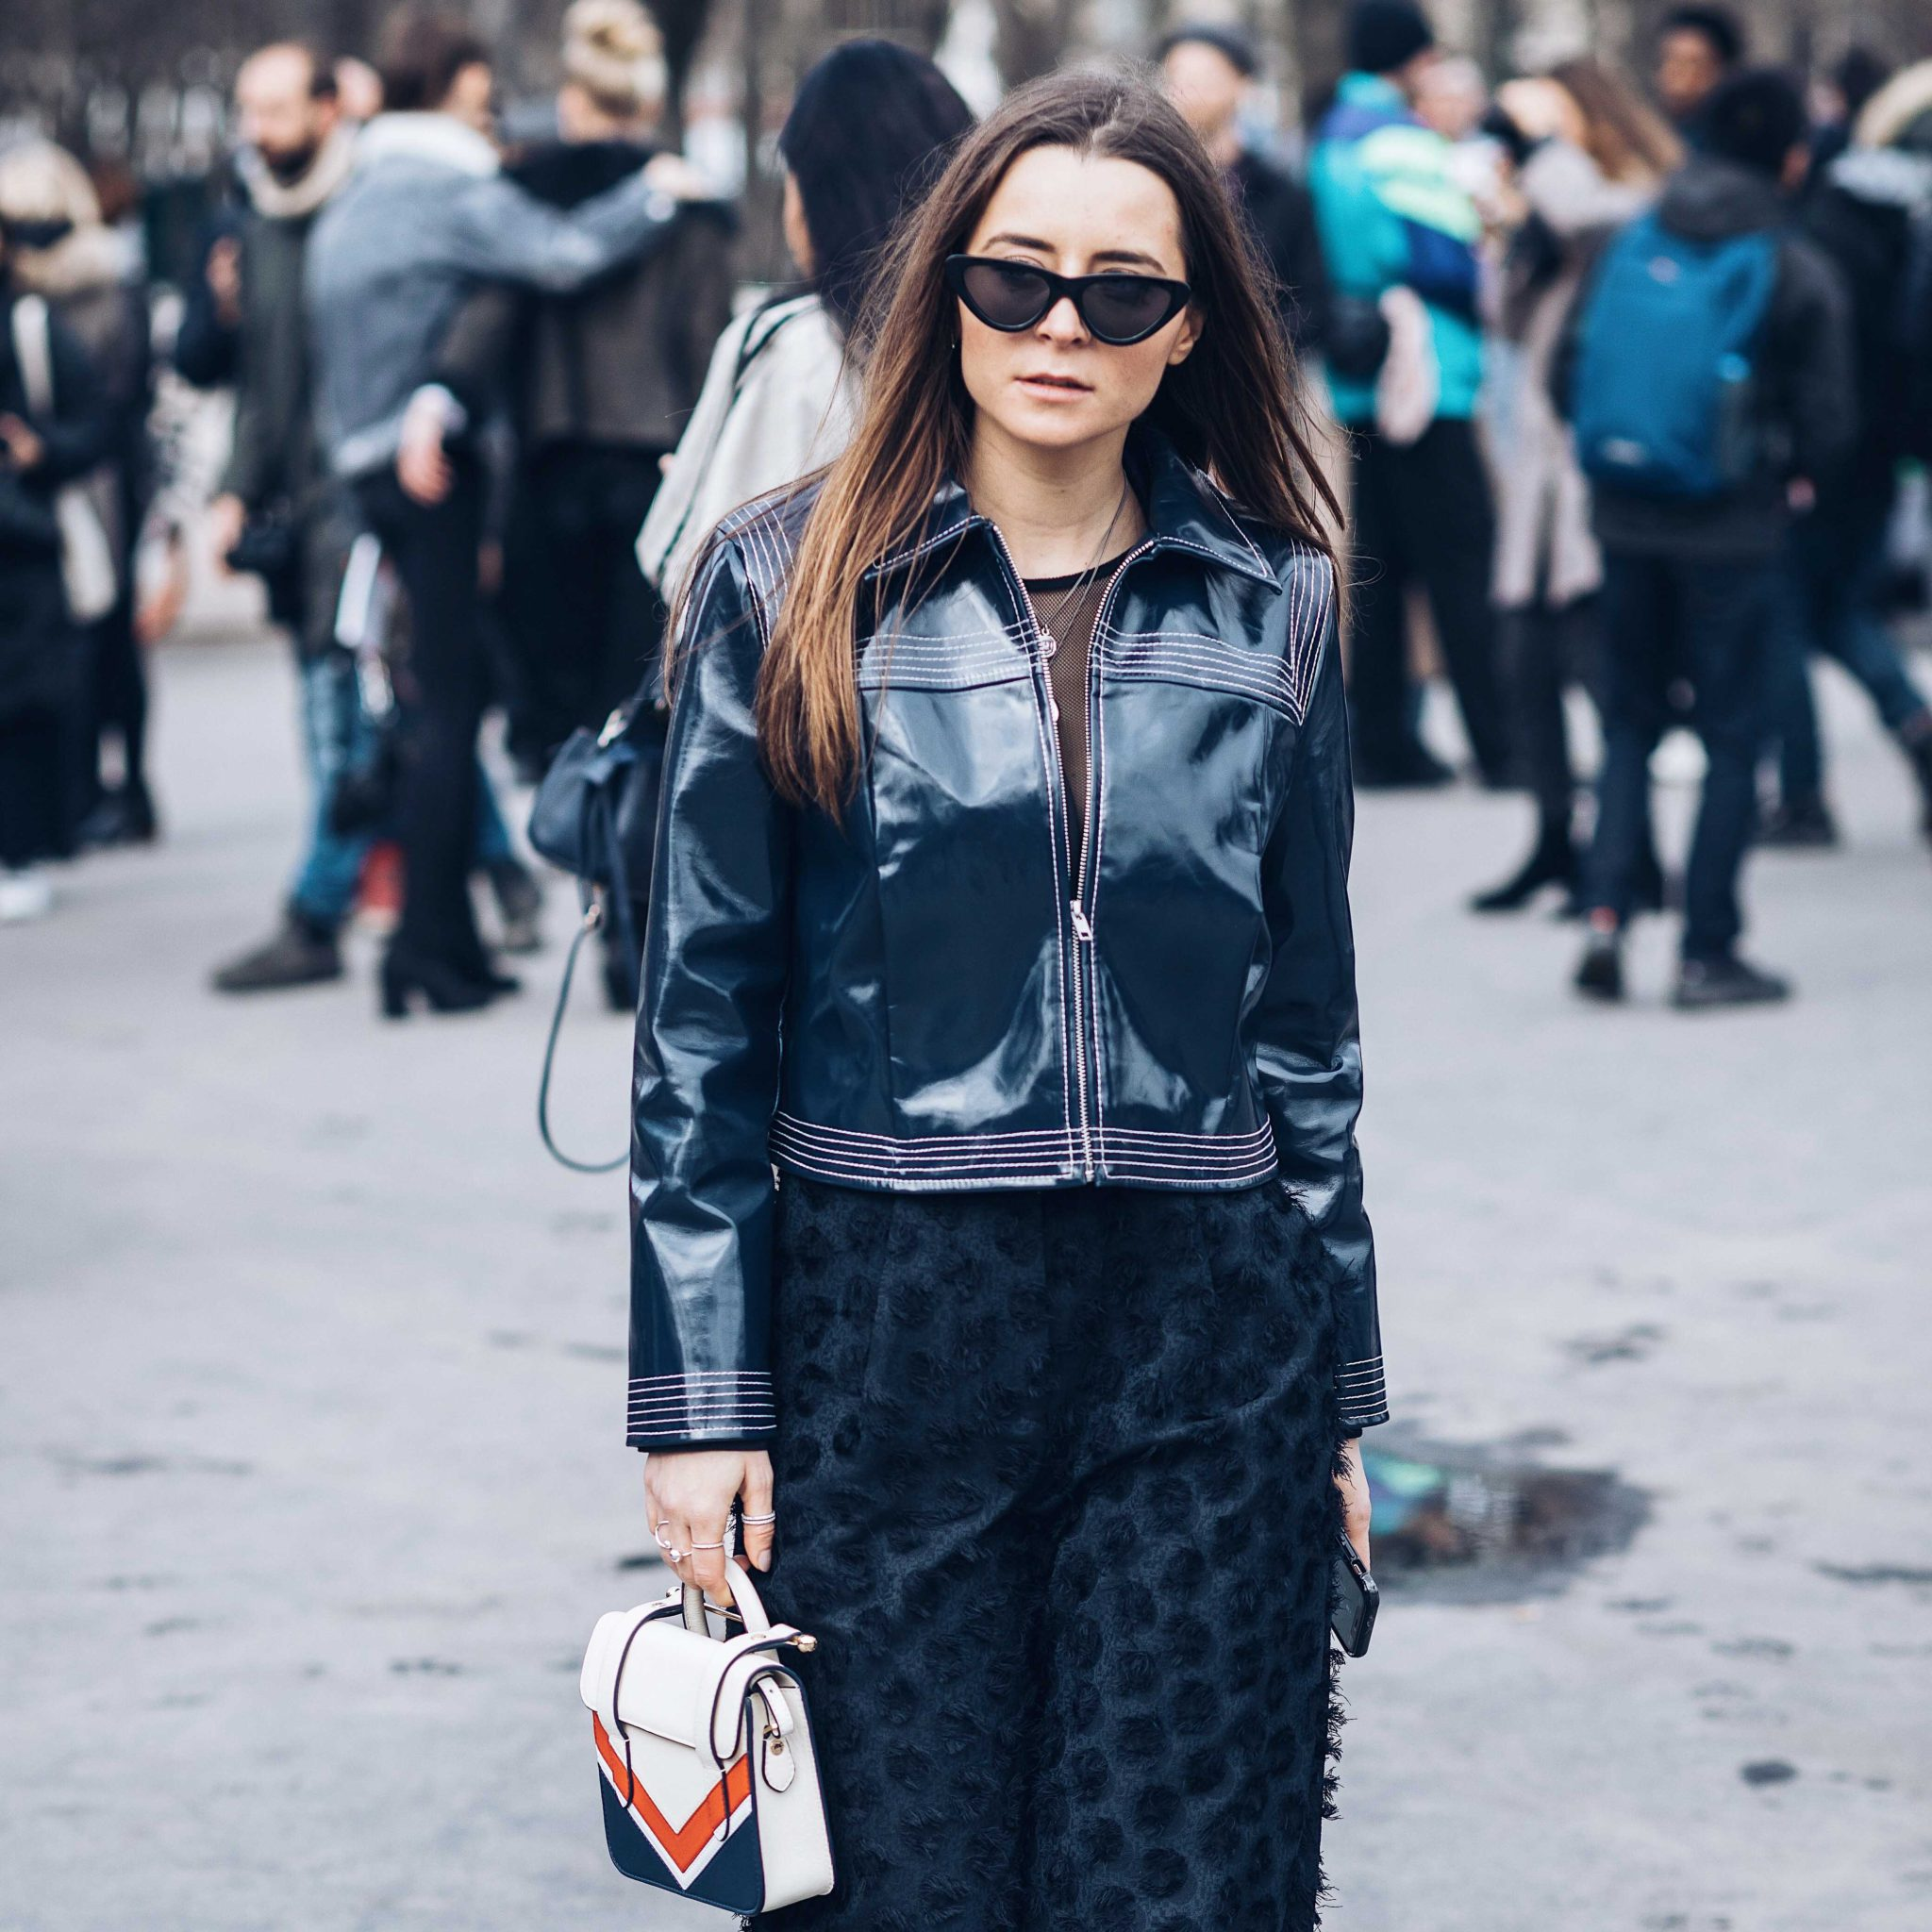 Best Street Style Paris Fashion Week Mars 2018 of Julia Comil / French Fashion Blogger in Los Angeles - Outfit for Chanel Fall Winter 2018 2019 show - Ganni Motor Jacket - Strathberry bag